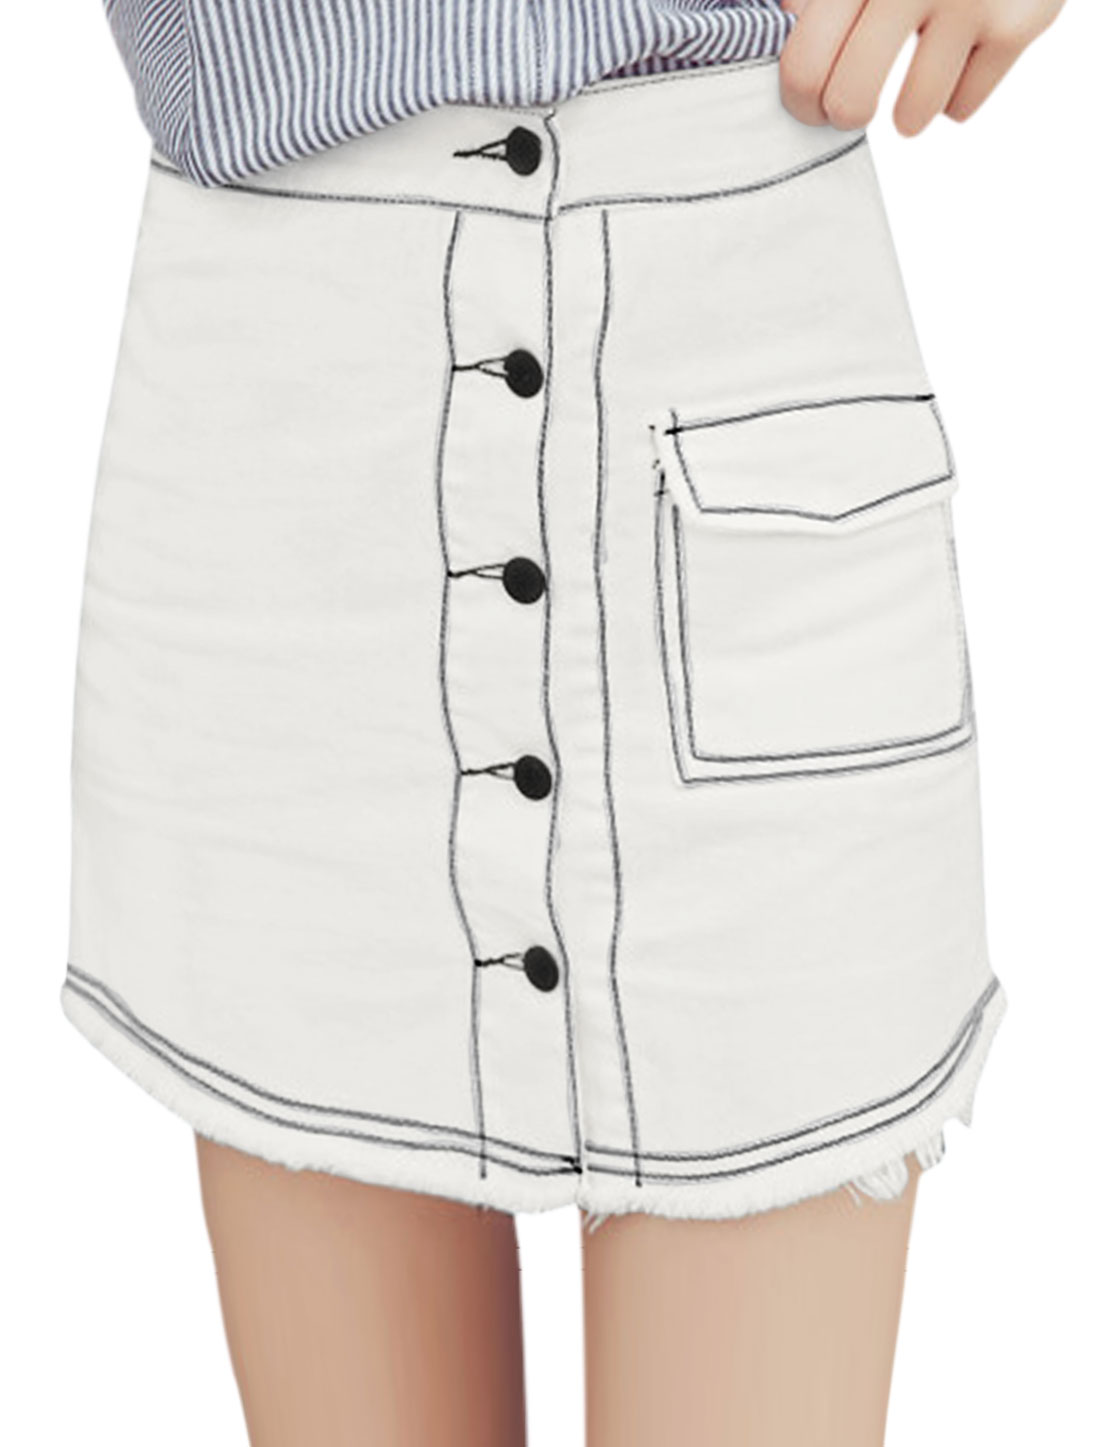 Women Single Breasted One Pocket Frag Hem Mini Denim Skirt White M